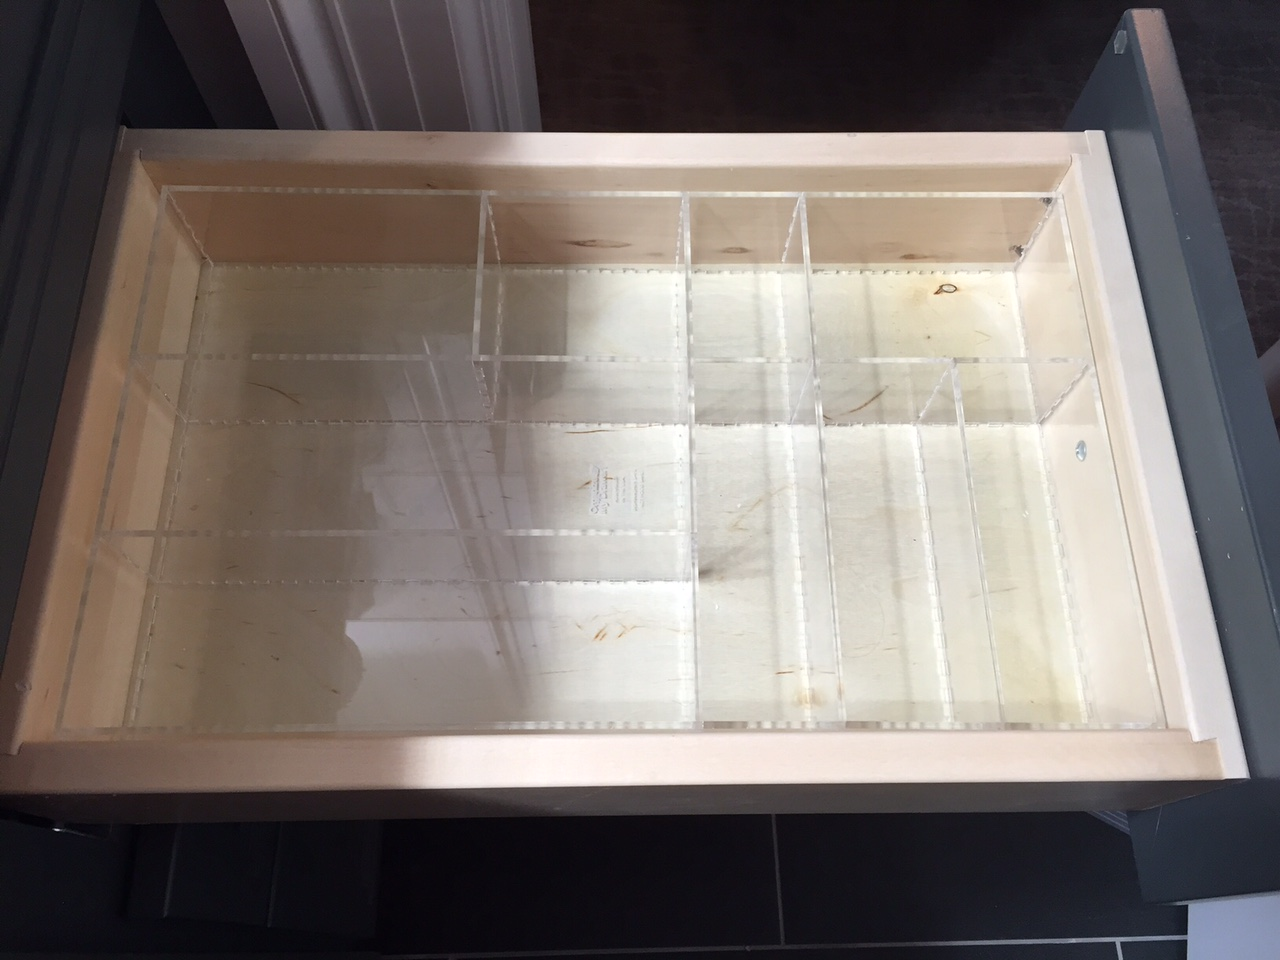 Picture of: Custom Acrylic Drawer Organizer Trays